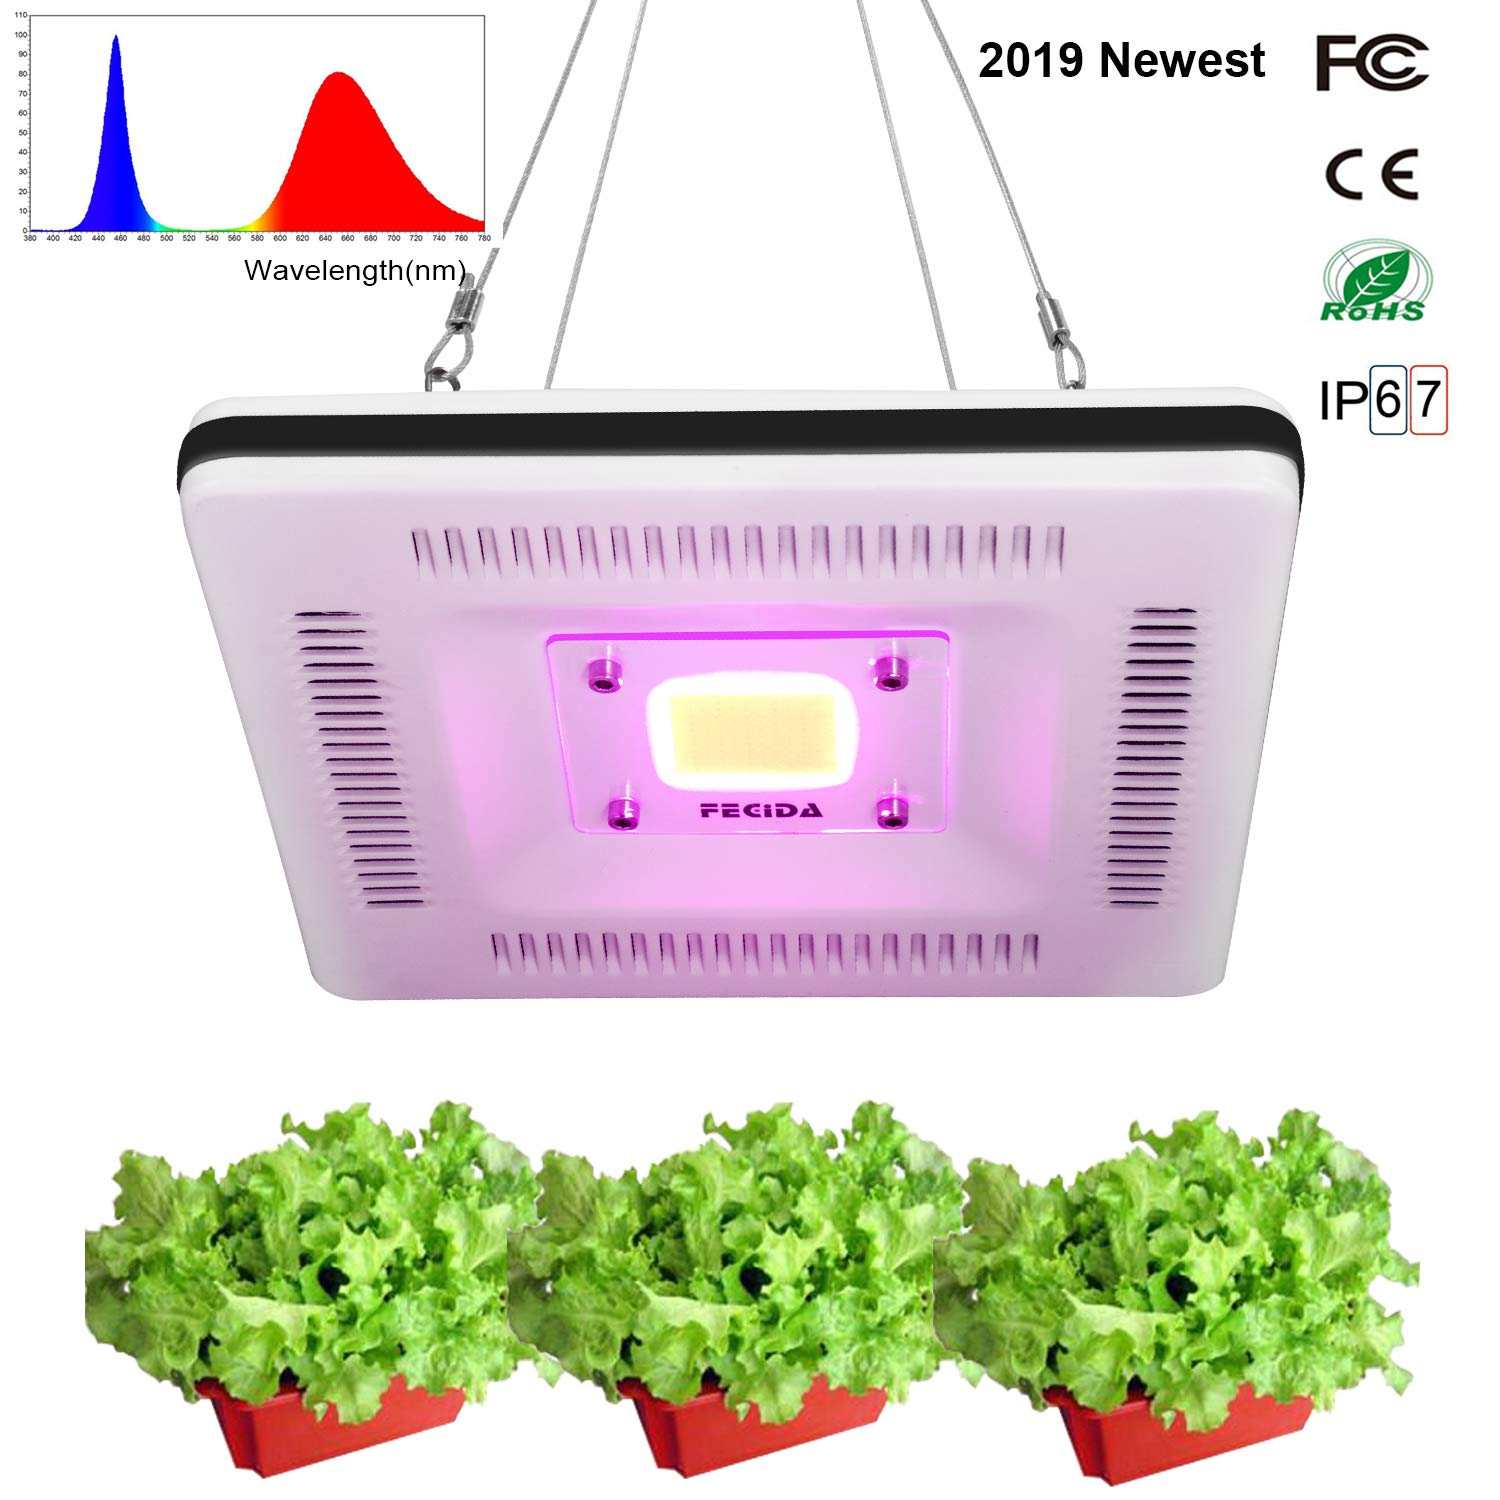 2019 Updated LED Grow Light Waterproof, 300W CFL & HPS Grow Lights Full Spectrum Equivalent, Silent and Lightweight for Indoor Grow Tent Plants Seed Starting, Seedlings Growing, Flowering by FECiDA